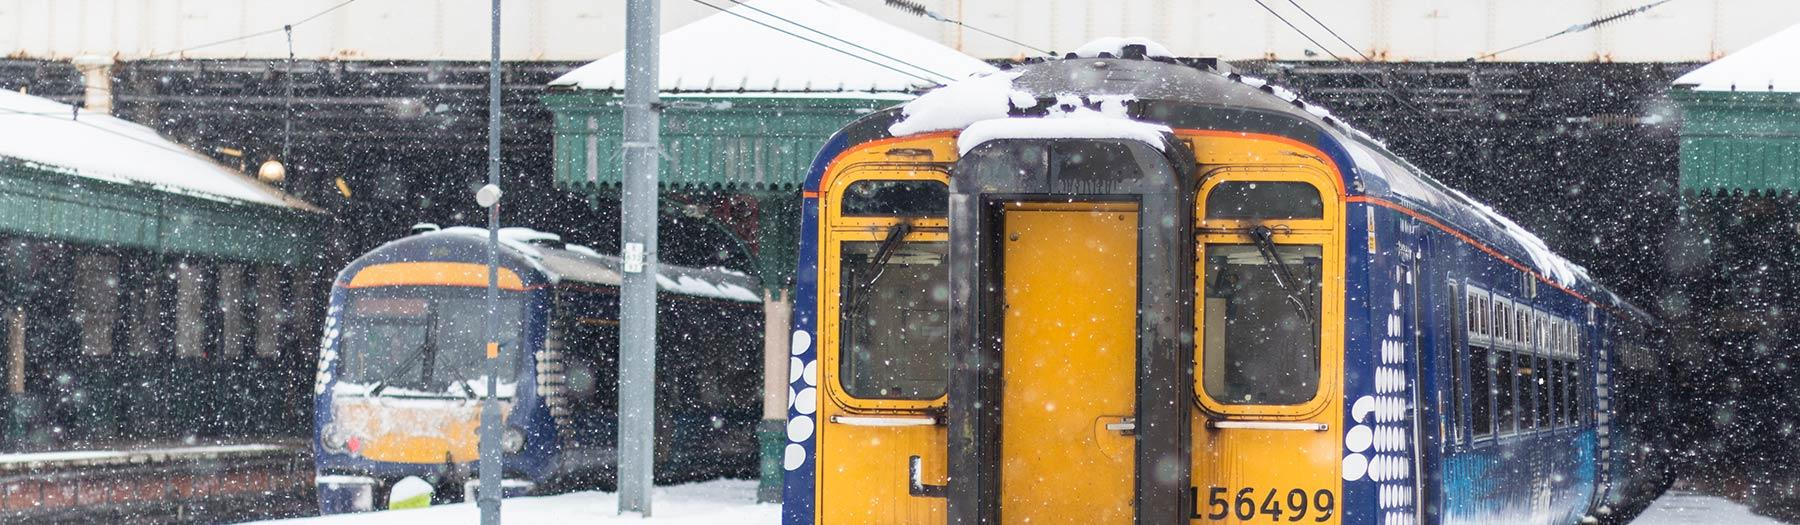 Snow on trains at a station